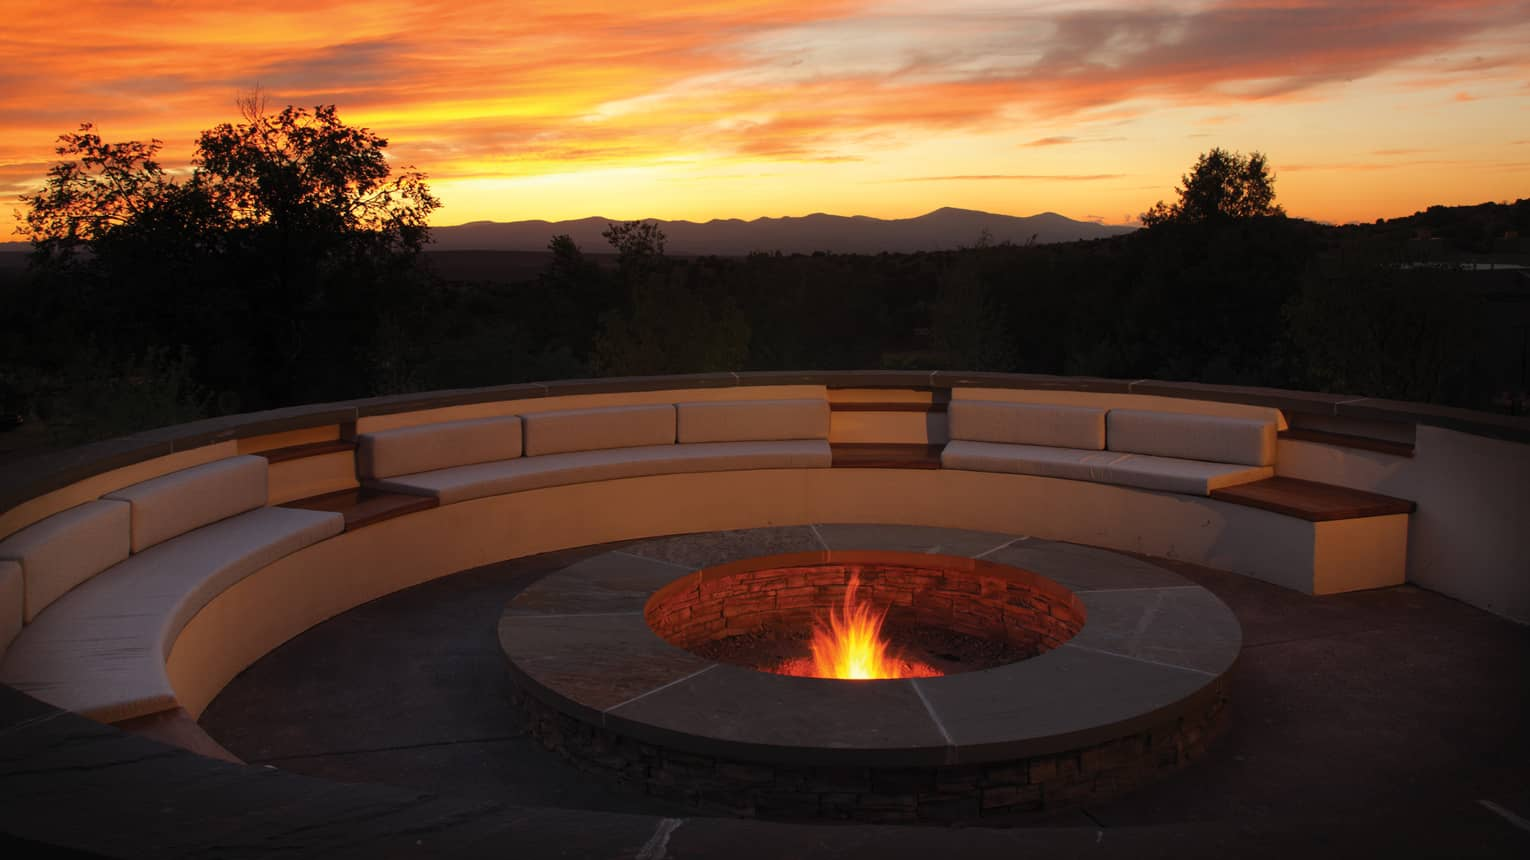 Outdoor fire pit burning with a large curved sofa, colourful sunset in the sky